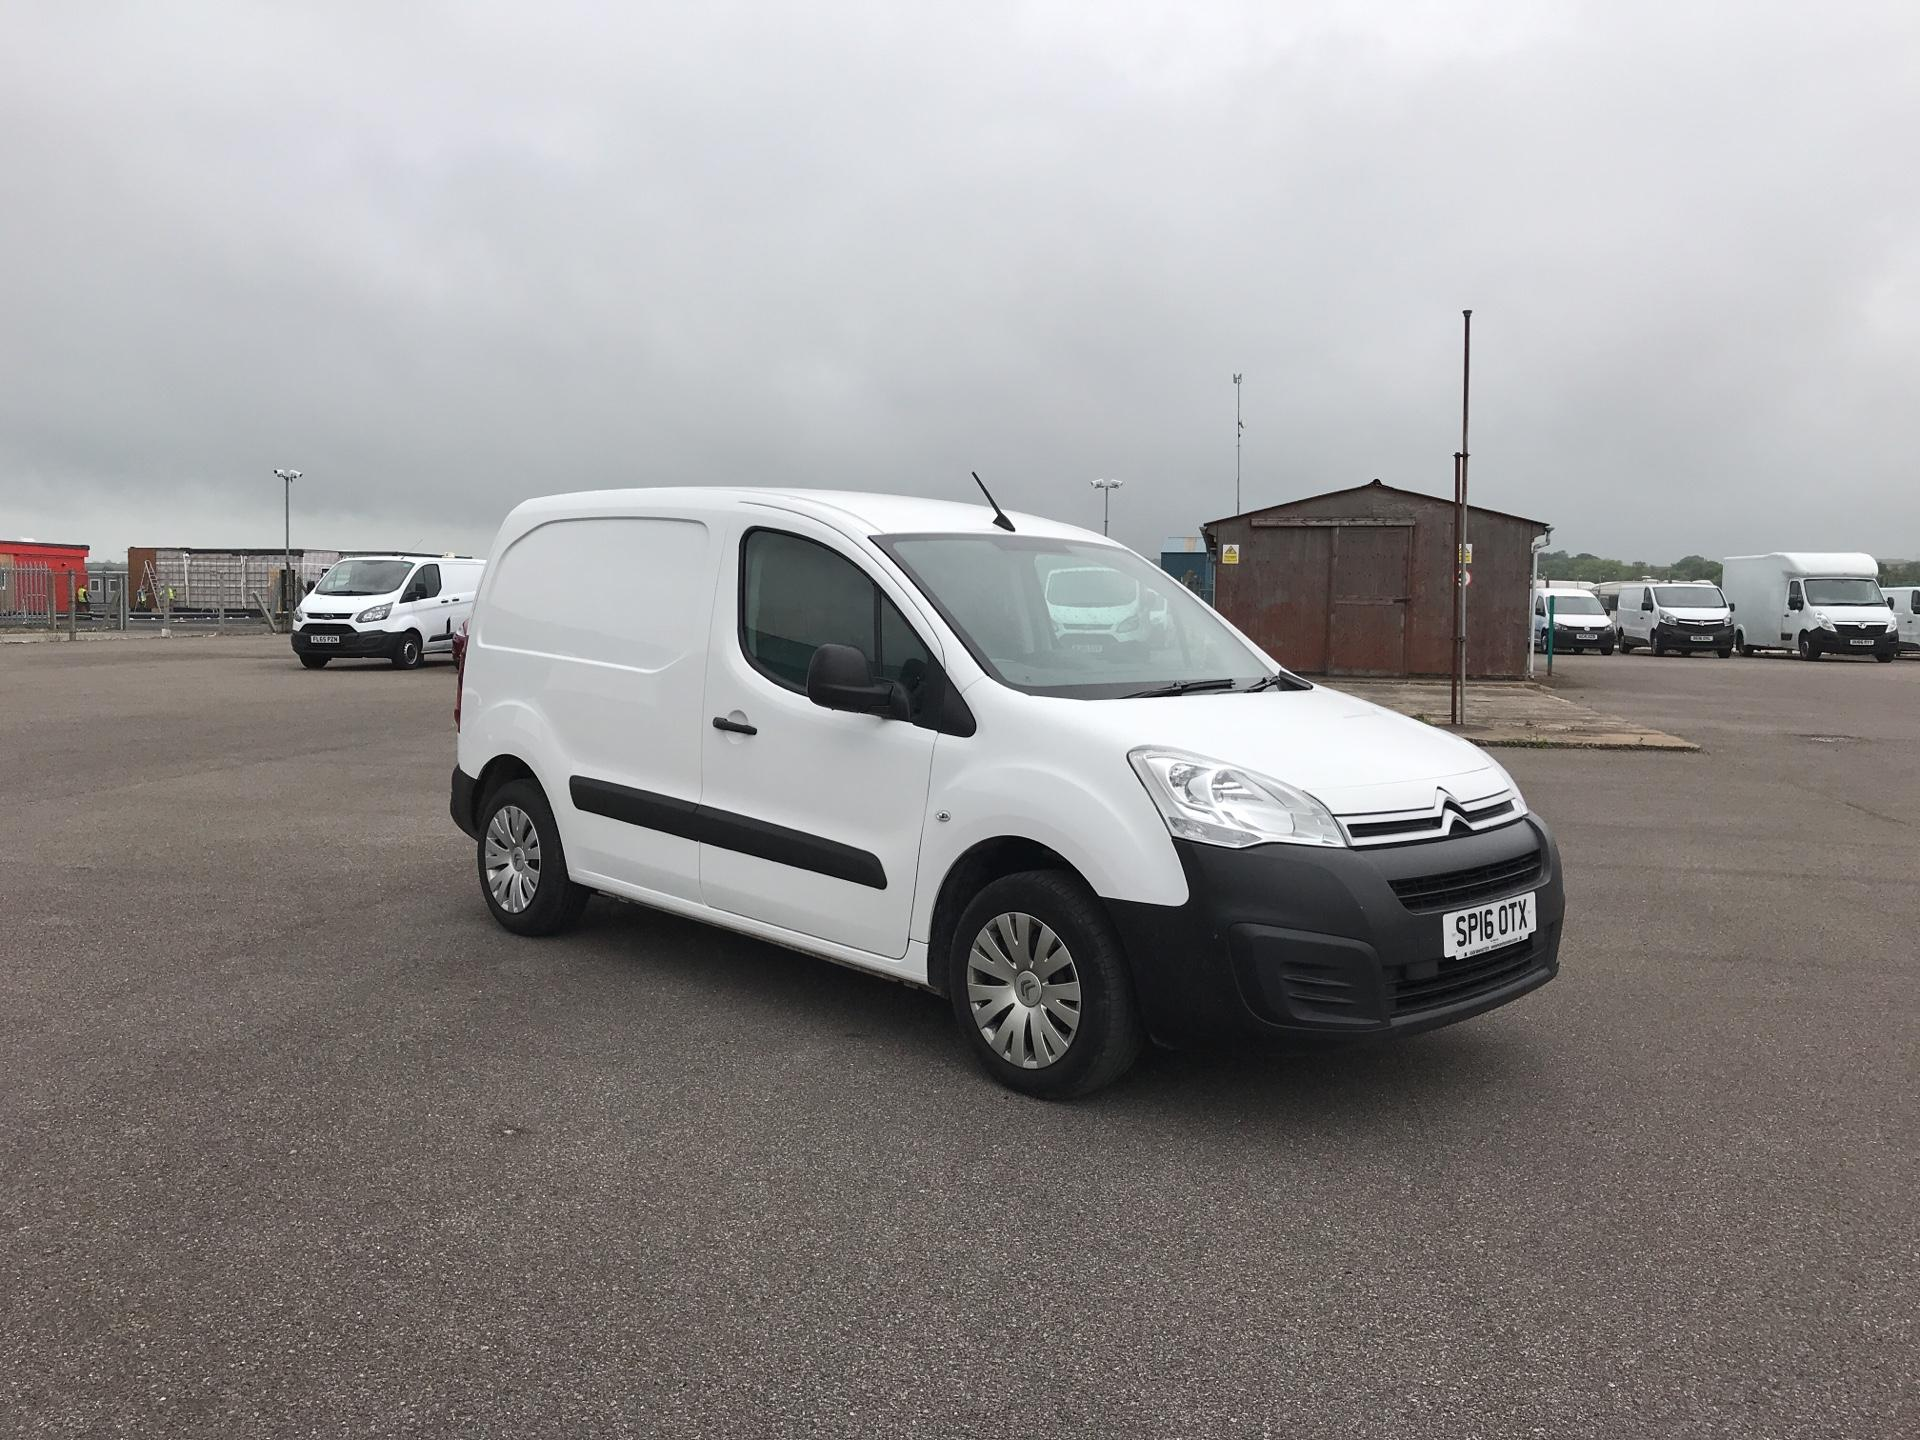 2016 Citroen Berlingo L1 DIESEL 1.6 HDI 625KG ENTERPRISE 75PS EURO 4/5 (SP16OTX)